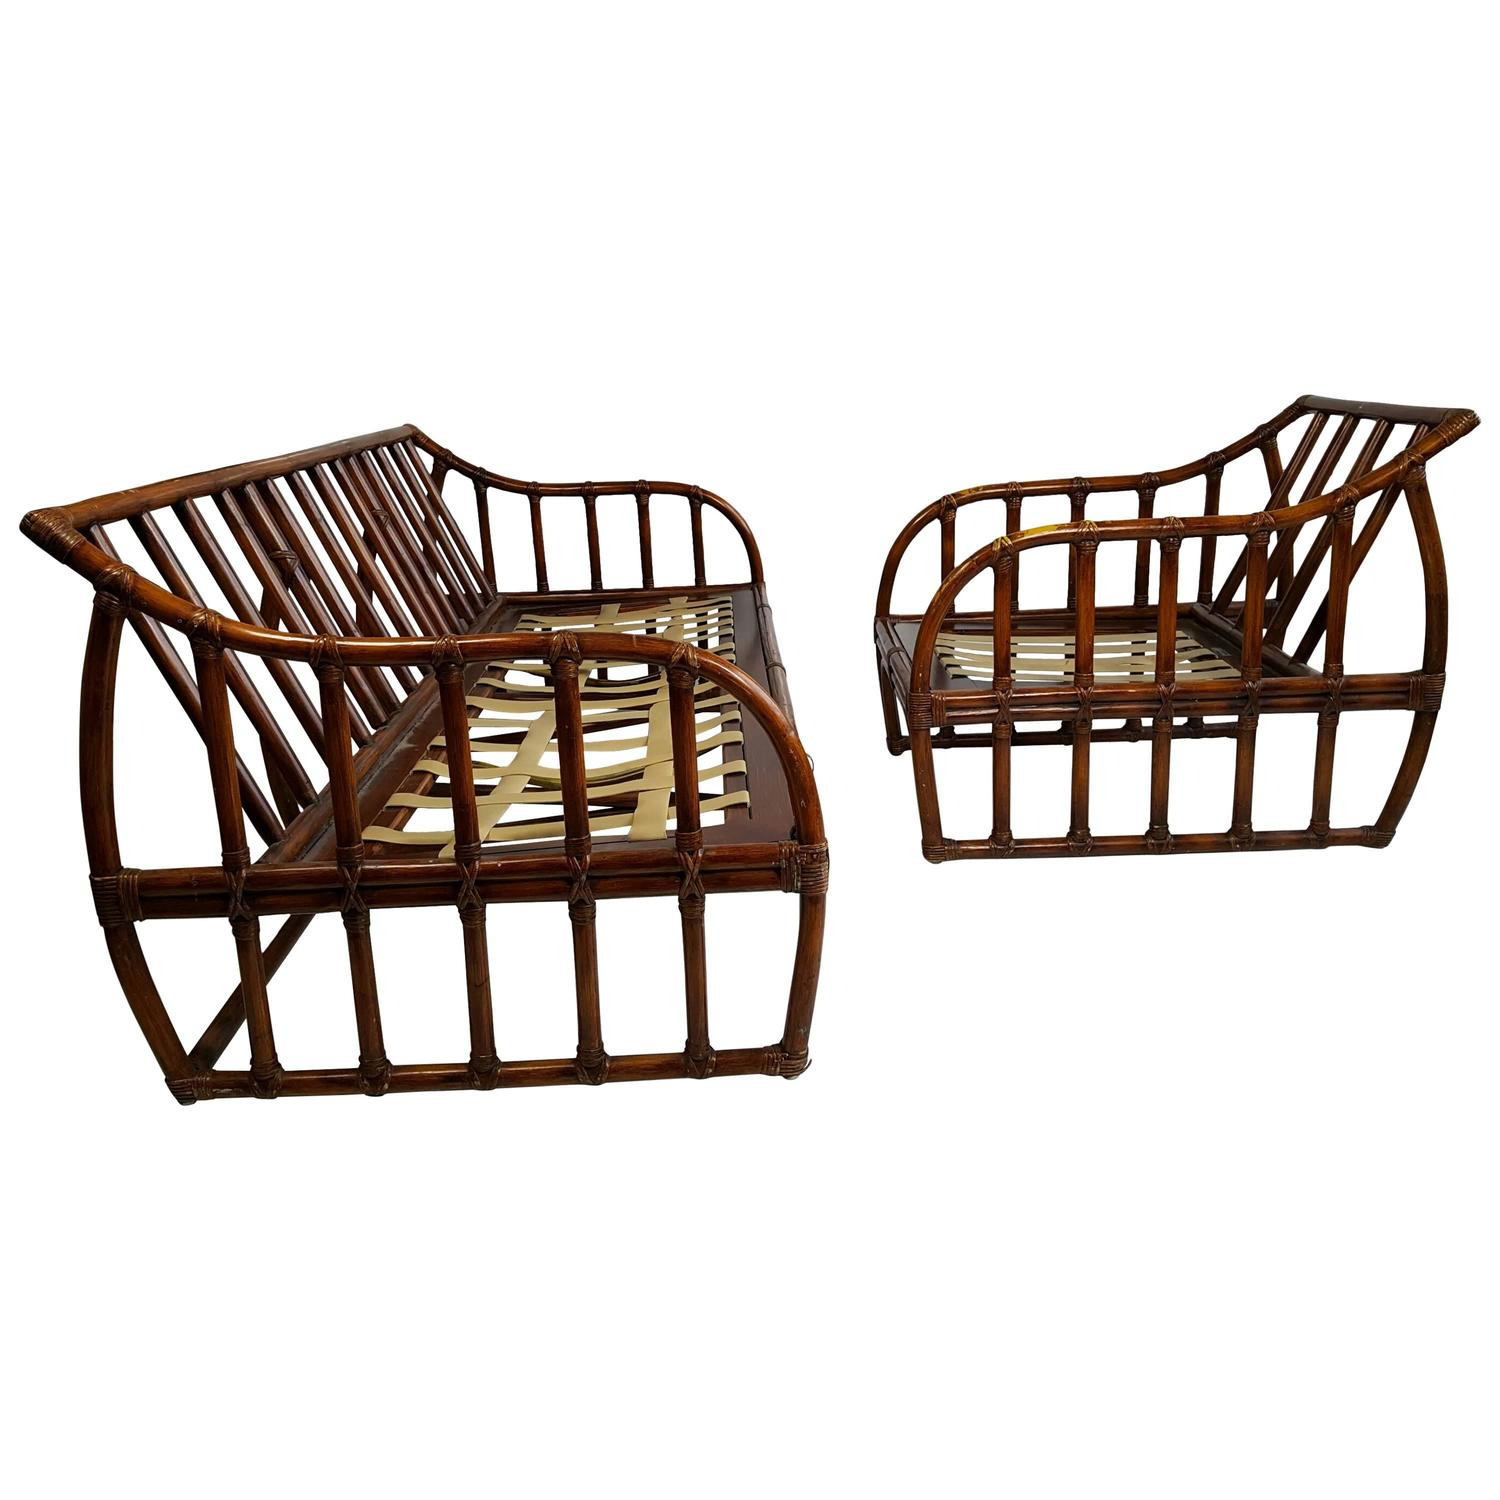 Ficks Reed Bamboo Sofa and Chair Art Deco For Sale at 1stdibs